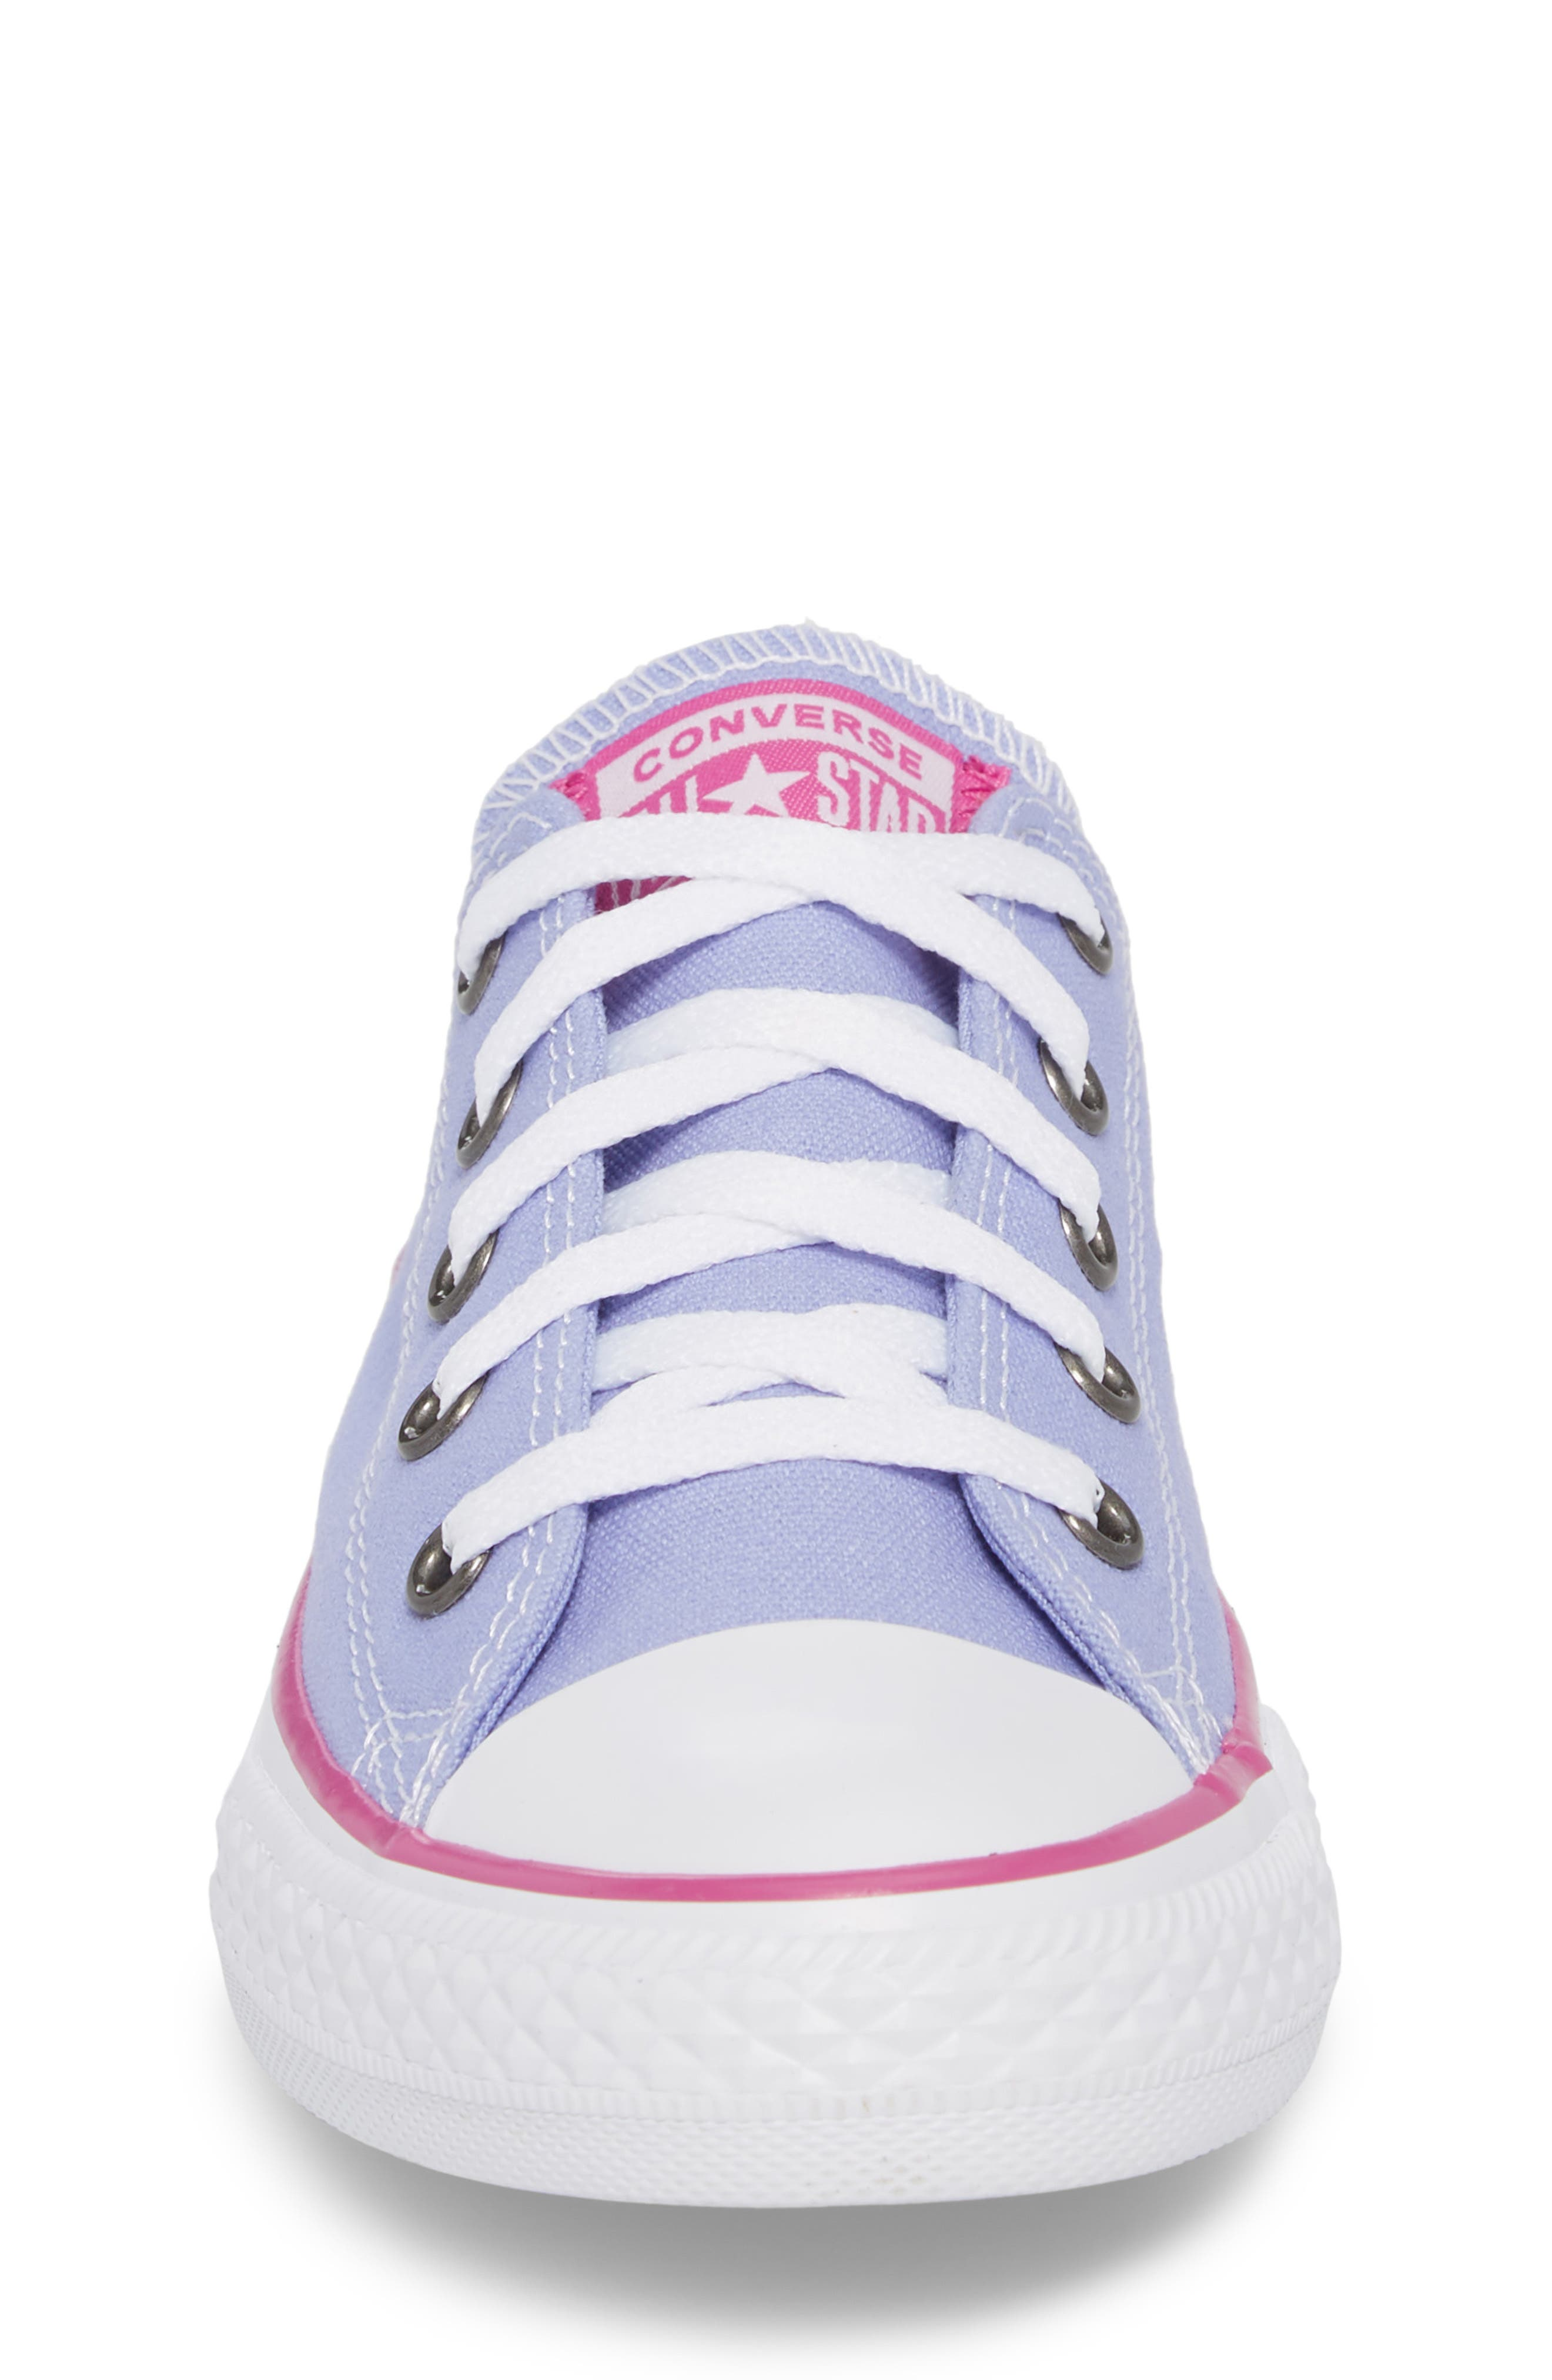 All Star<sup>®</sup> Low Top Sneaker,                             Alternate thumbnail 4, color,                             Twilight Purple